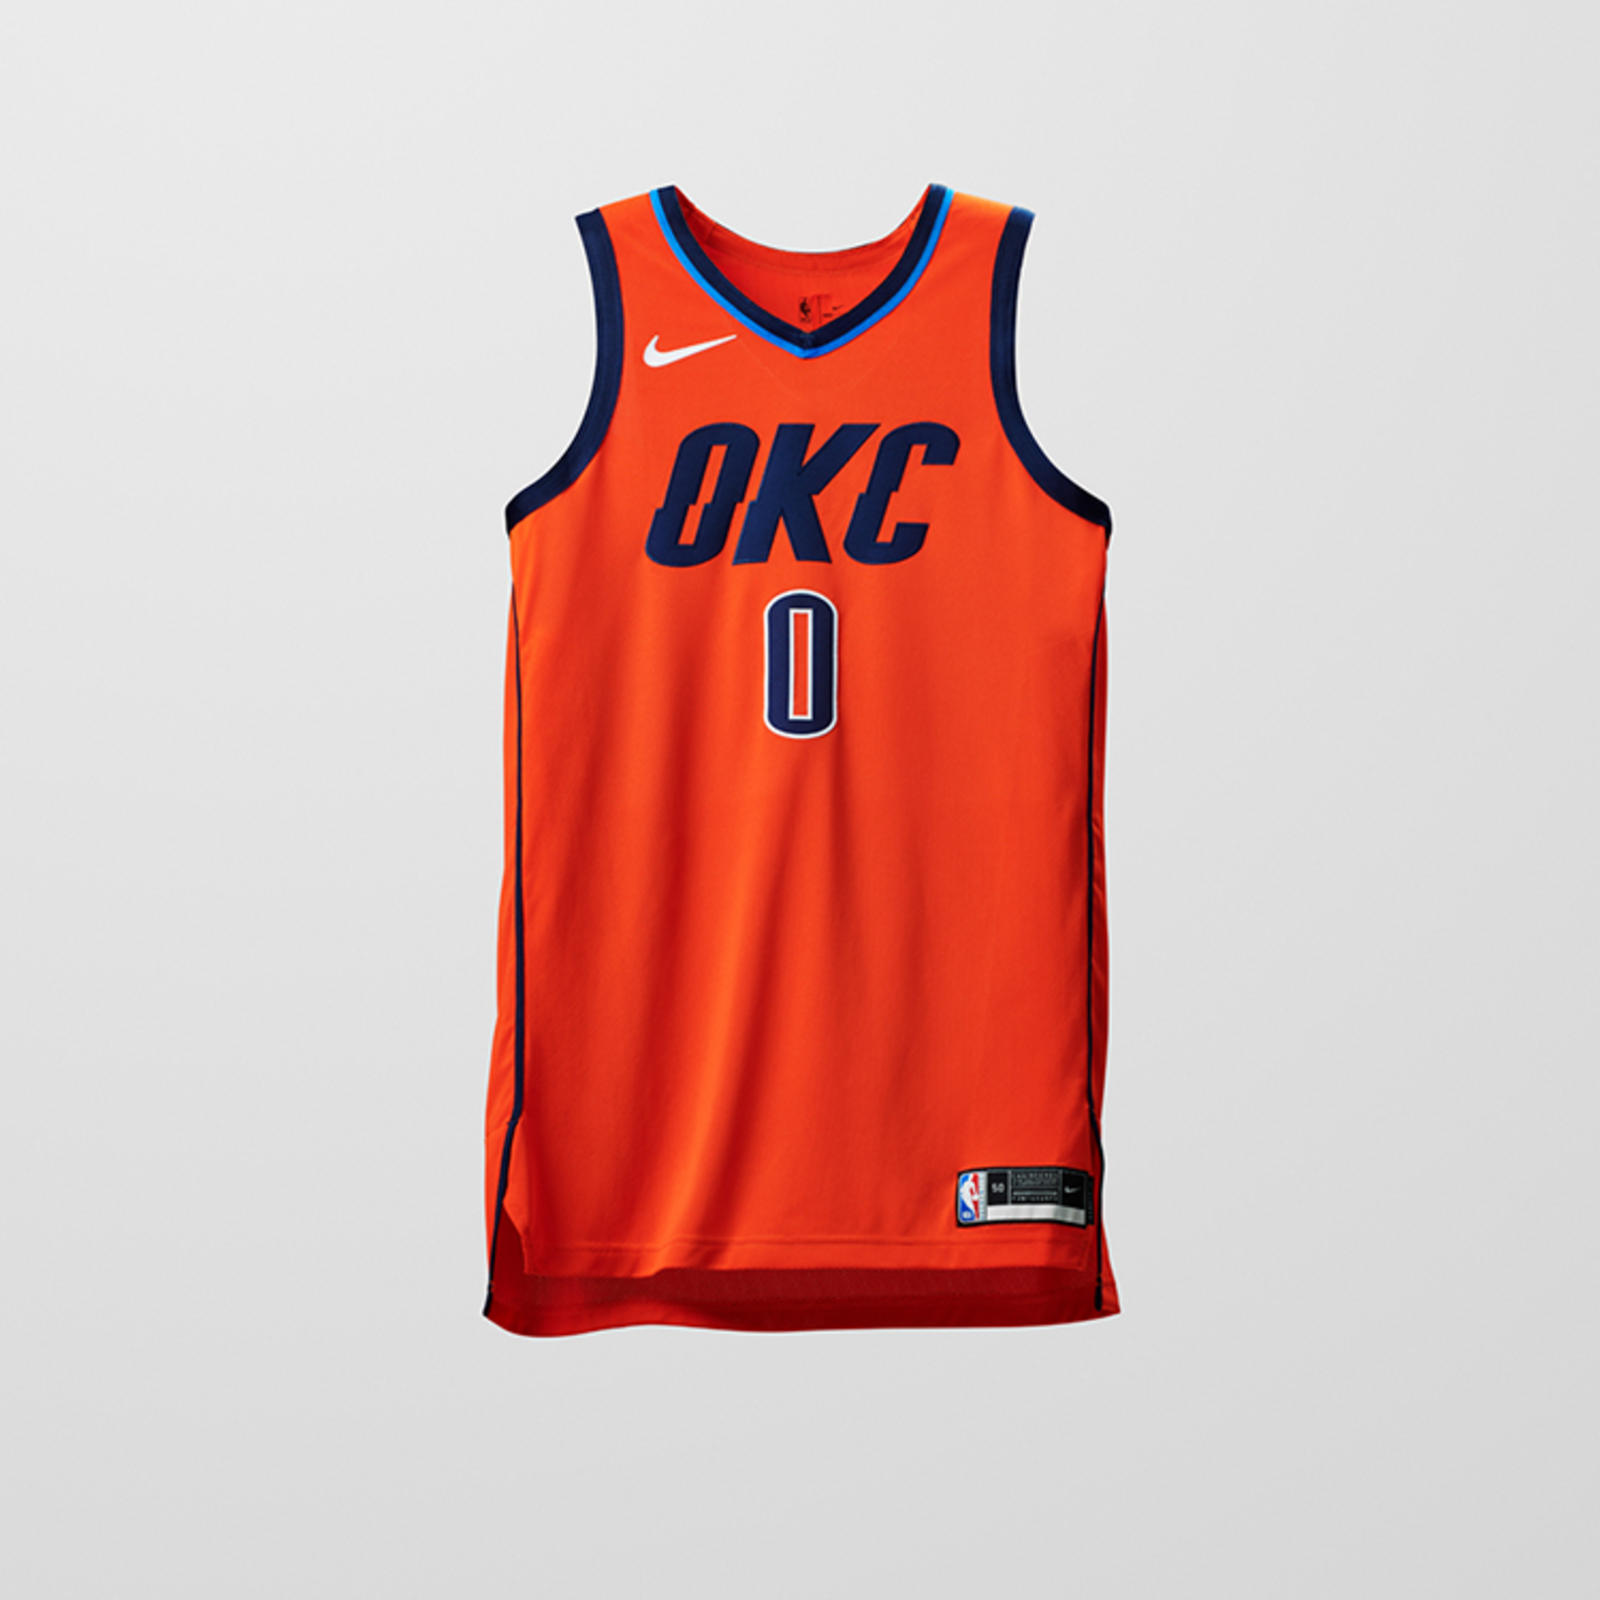 Introducing the Nike x NBA EARNED Edition Uniforms 3 086ddbe63